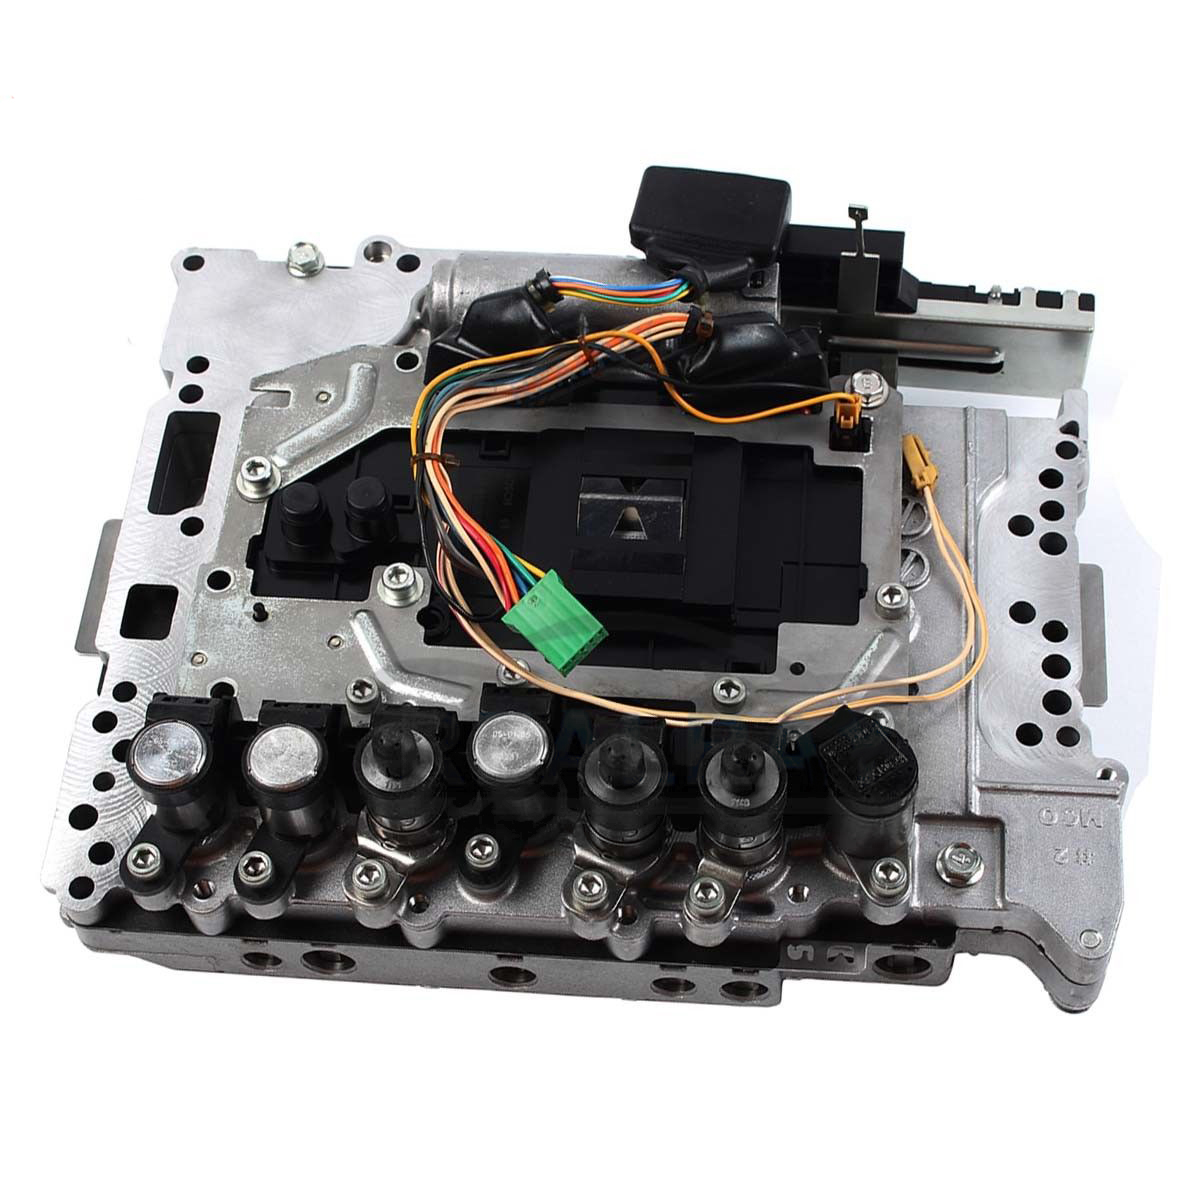 Remanufactured RE5R05A Valve Body Fits For Nissan Xterra Pathfinder/Armada/Frontier With All Solenoids And TCM